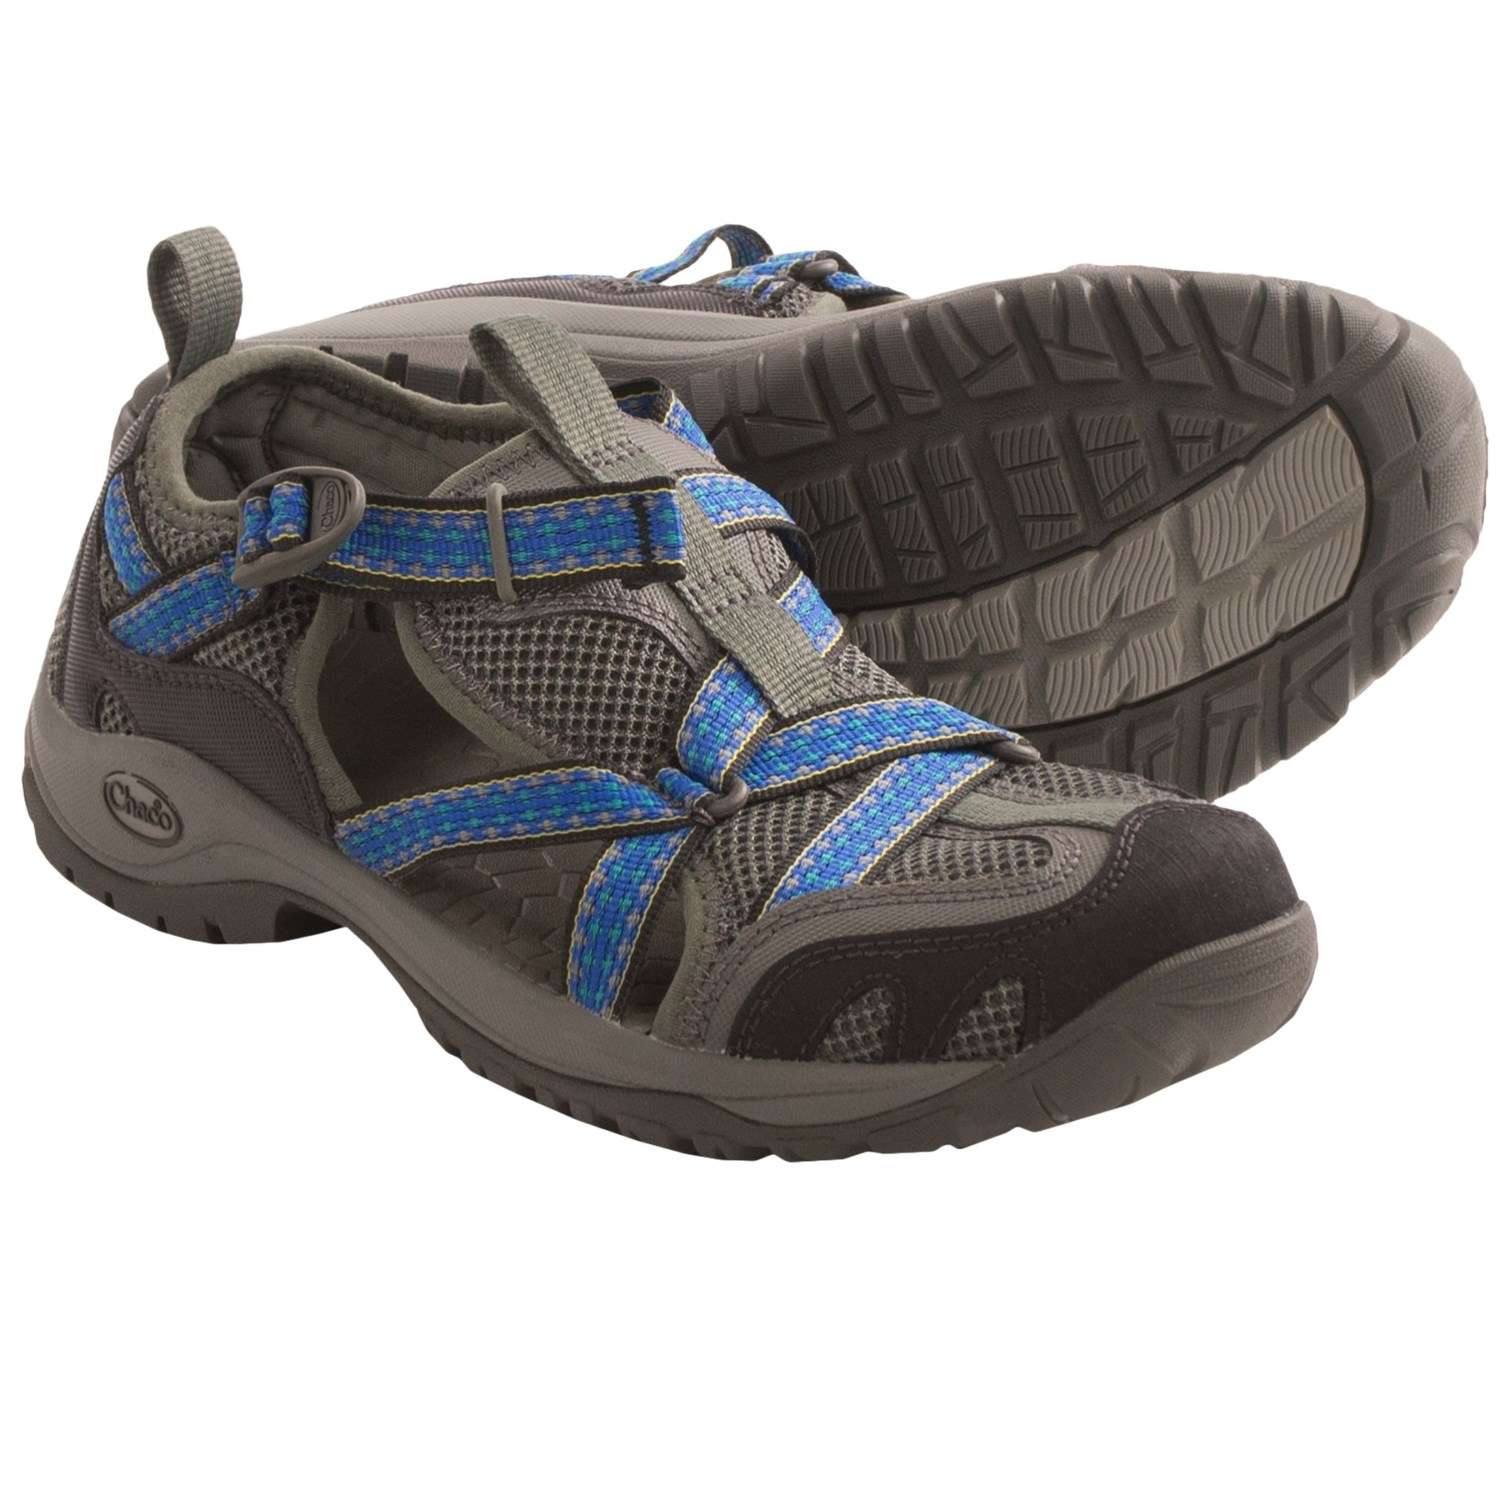 Other Women's Shoes With Good Arch Support